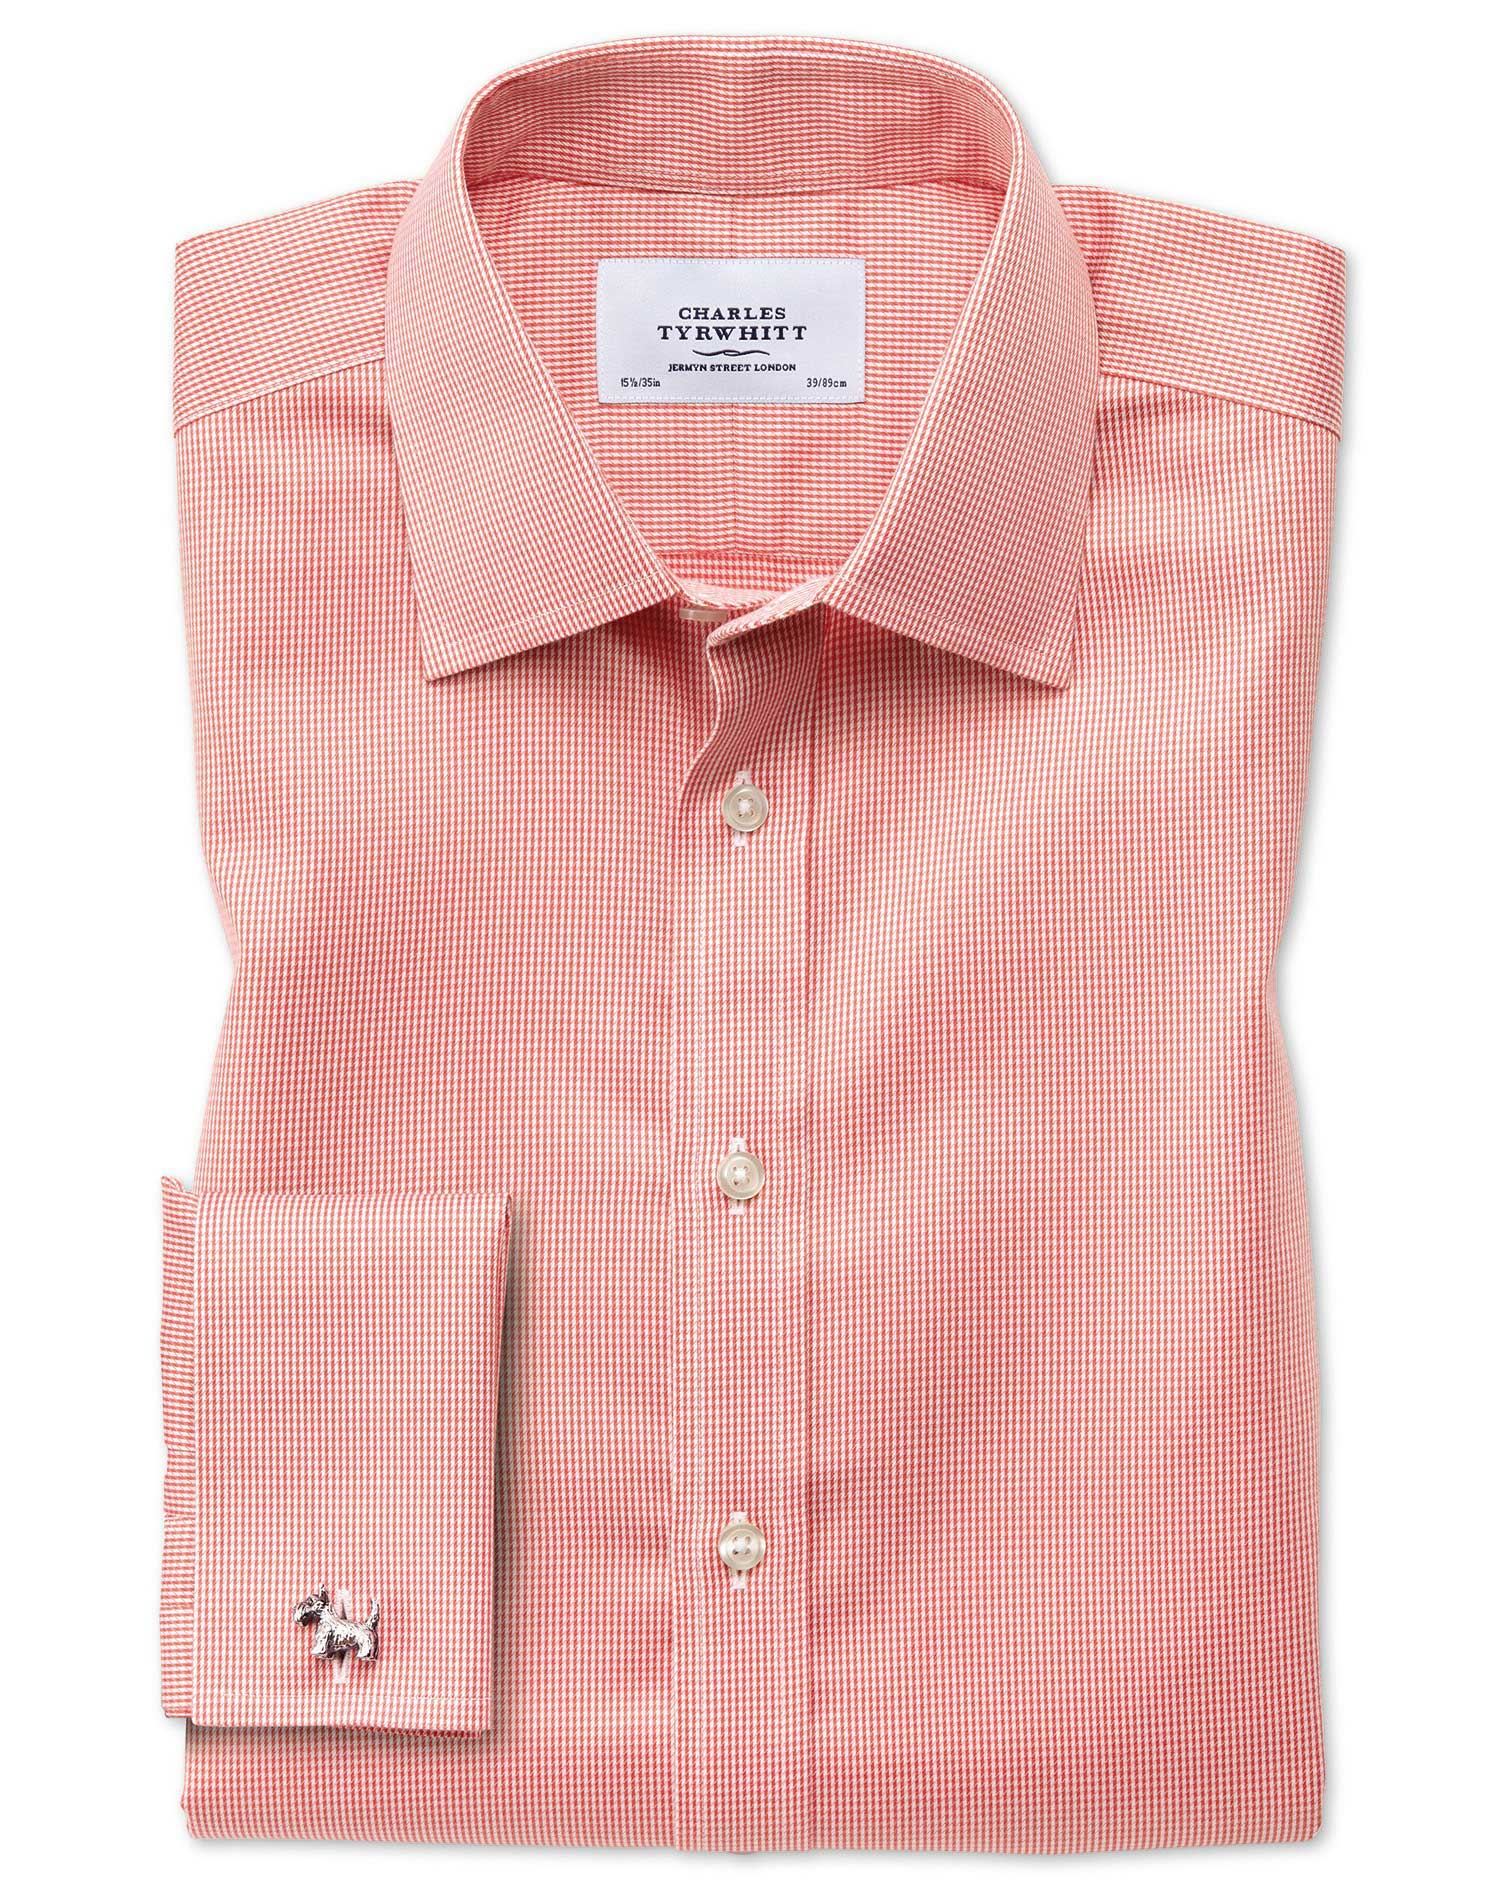 Classic Fit Non-Iron Puppytooth Coral Cotton Formal Shirt Double Cuff Size 15.5/33 by Charles Tyrwhi